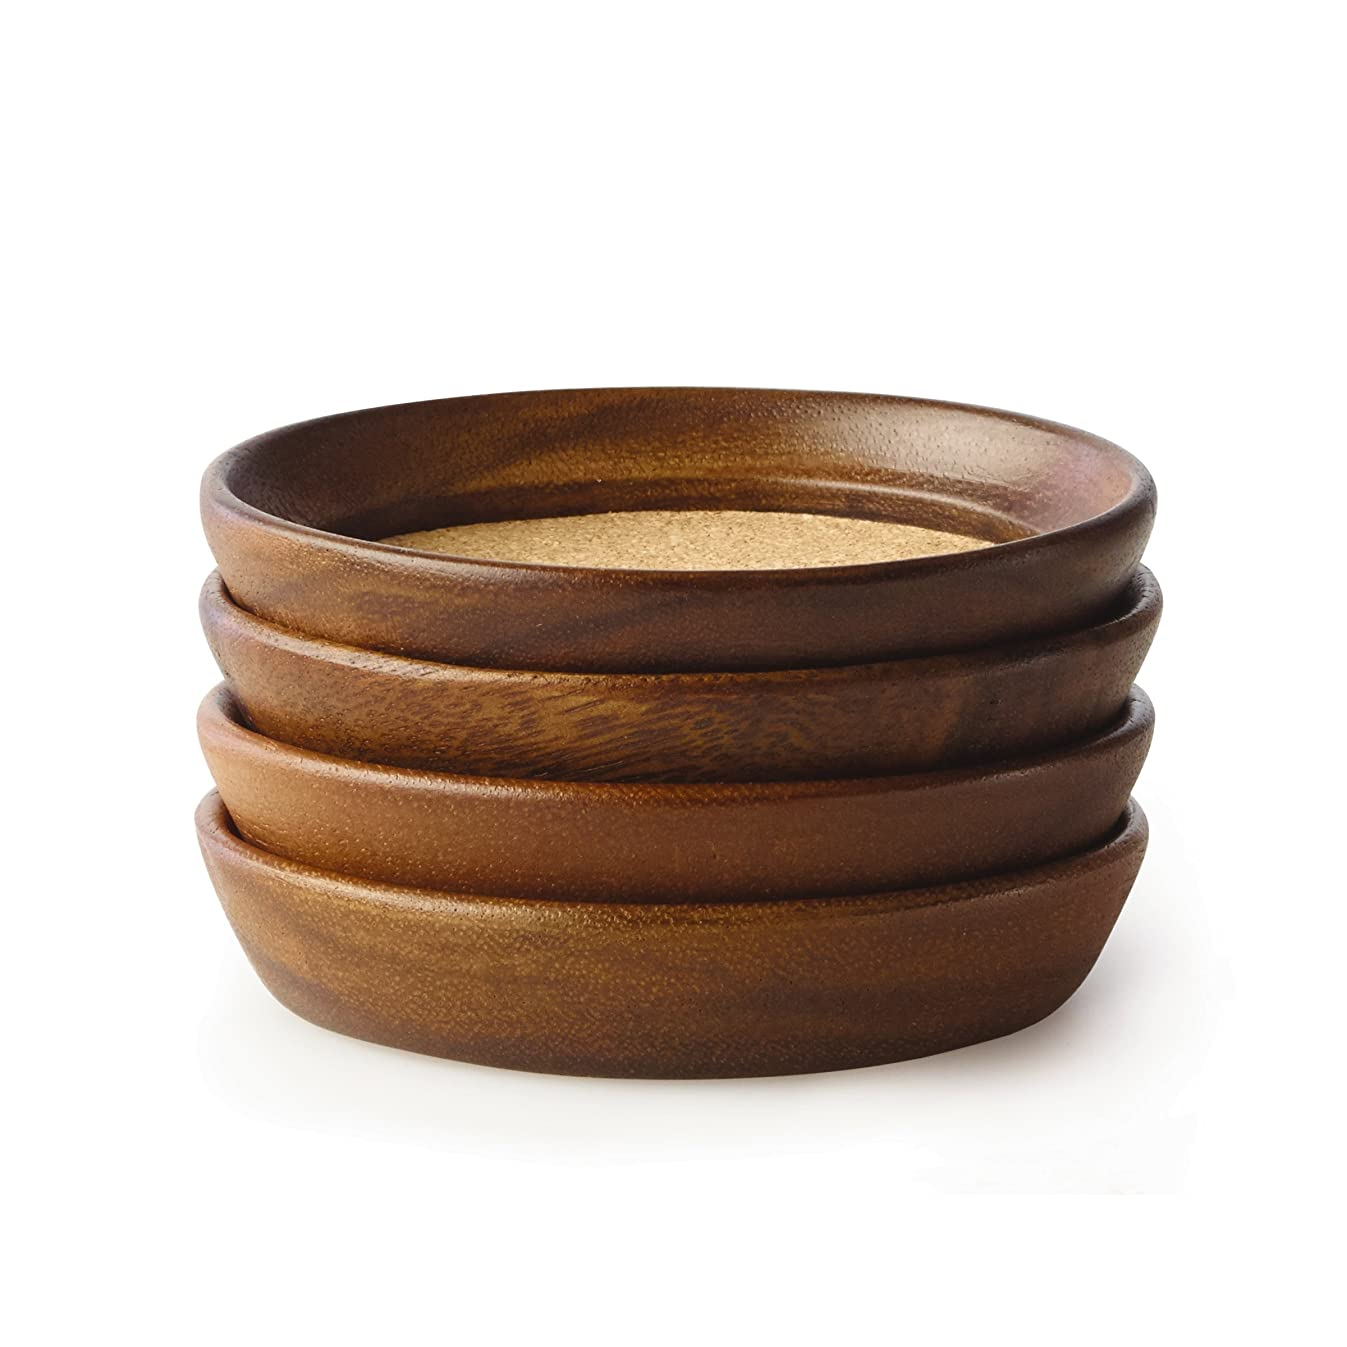 Kamenstein 5186008 4 Piece Set, Natural Acacia Wood and Cork Stackable Coasters, Set of 4,